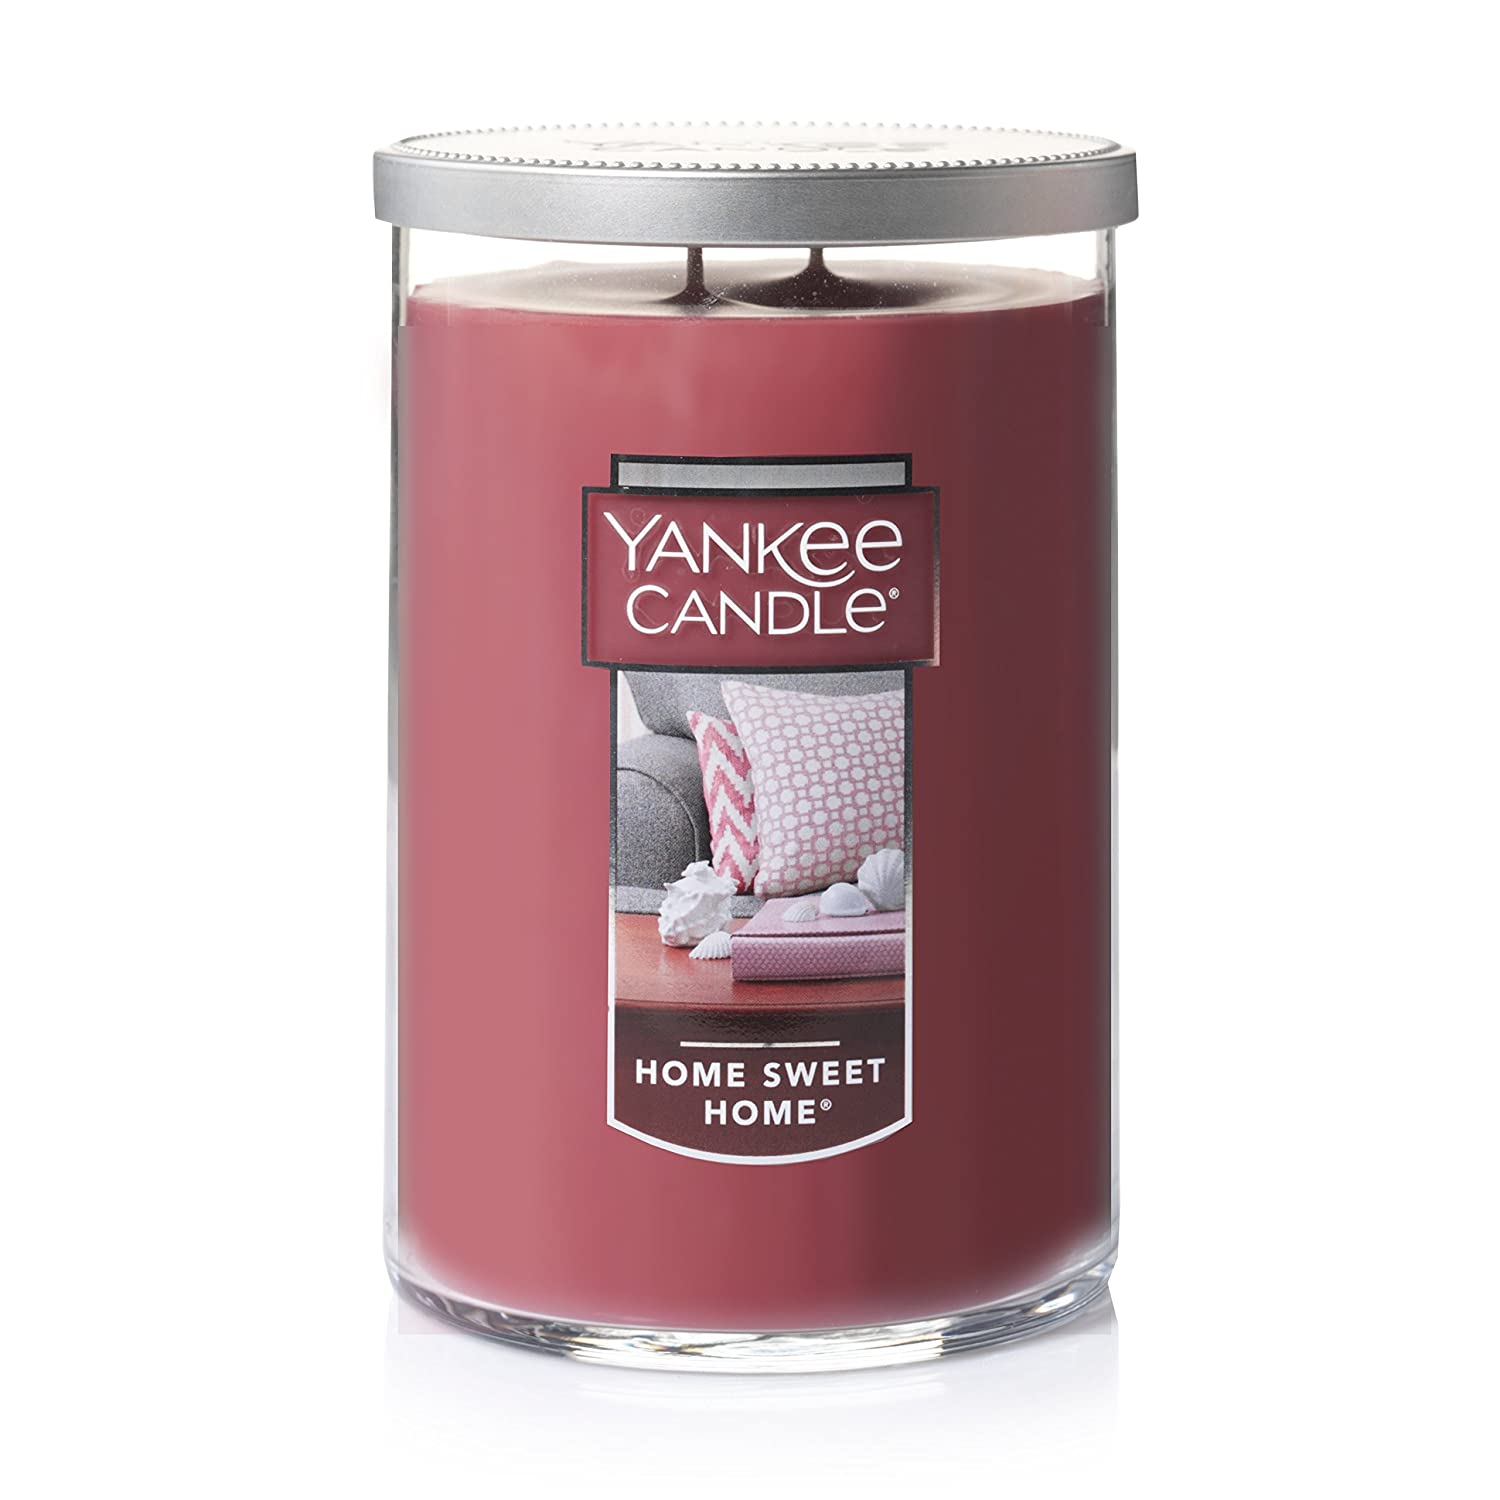 Yankee Candle Large 2-Wick Tumbler Candle, Home Sweet Home